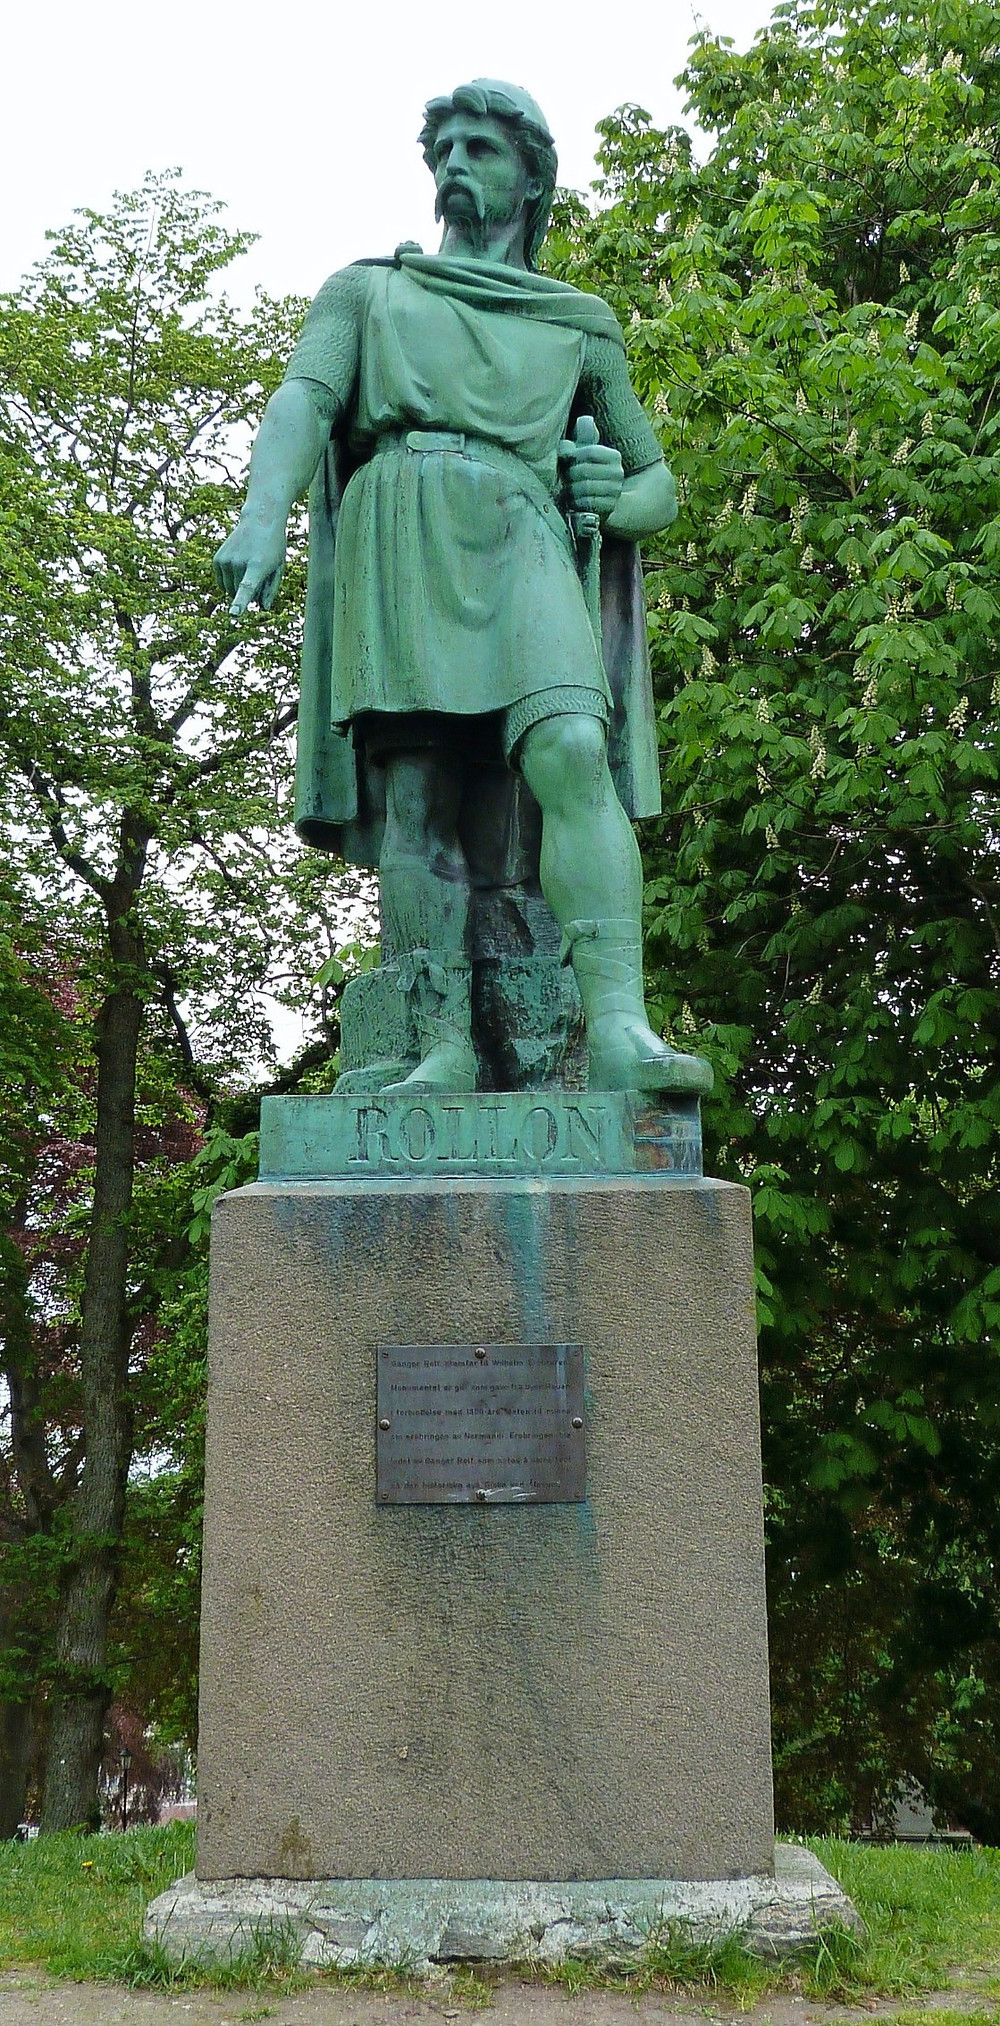 Statue of Rollo in Ålesund, Norway. Delusion23 / CC BY-SA (https://creativecommons.org/licenses/by-sa/4.0)